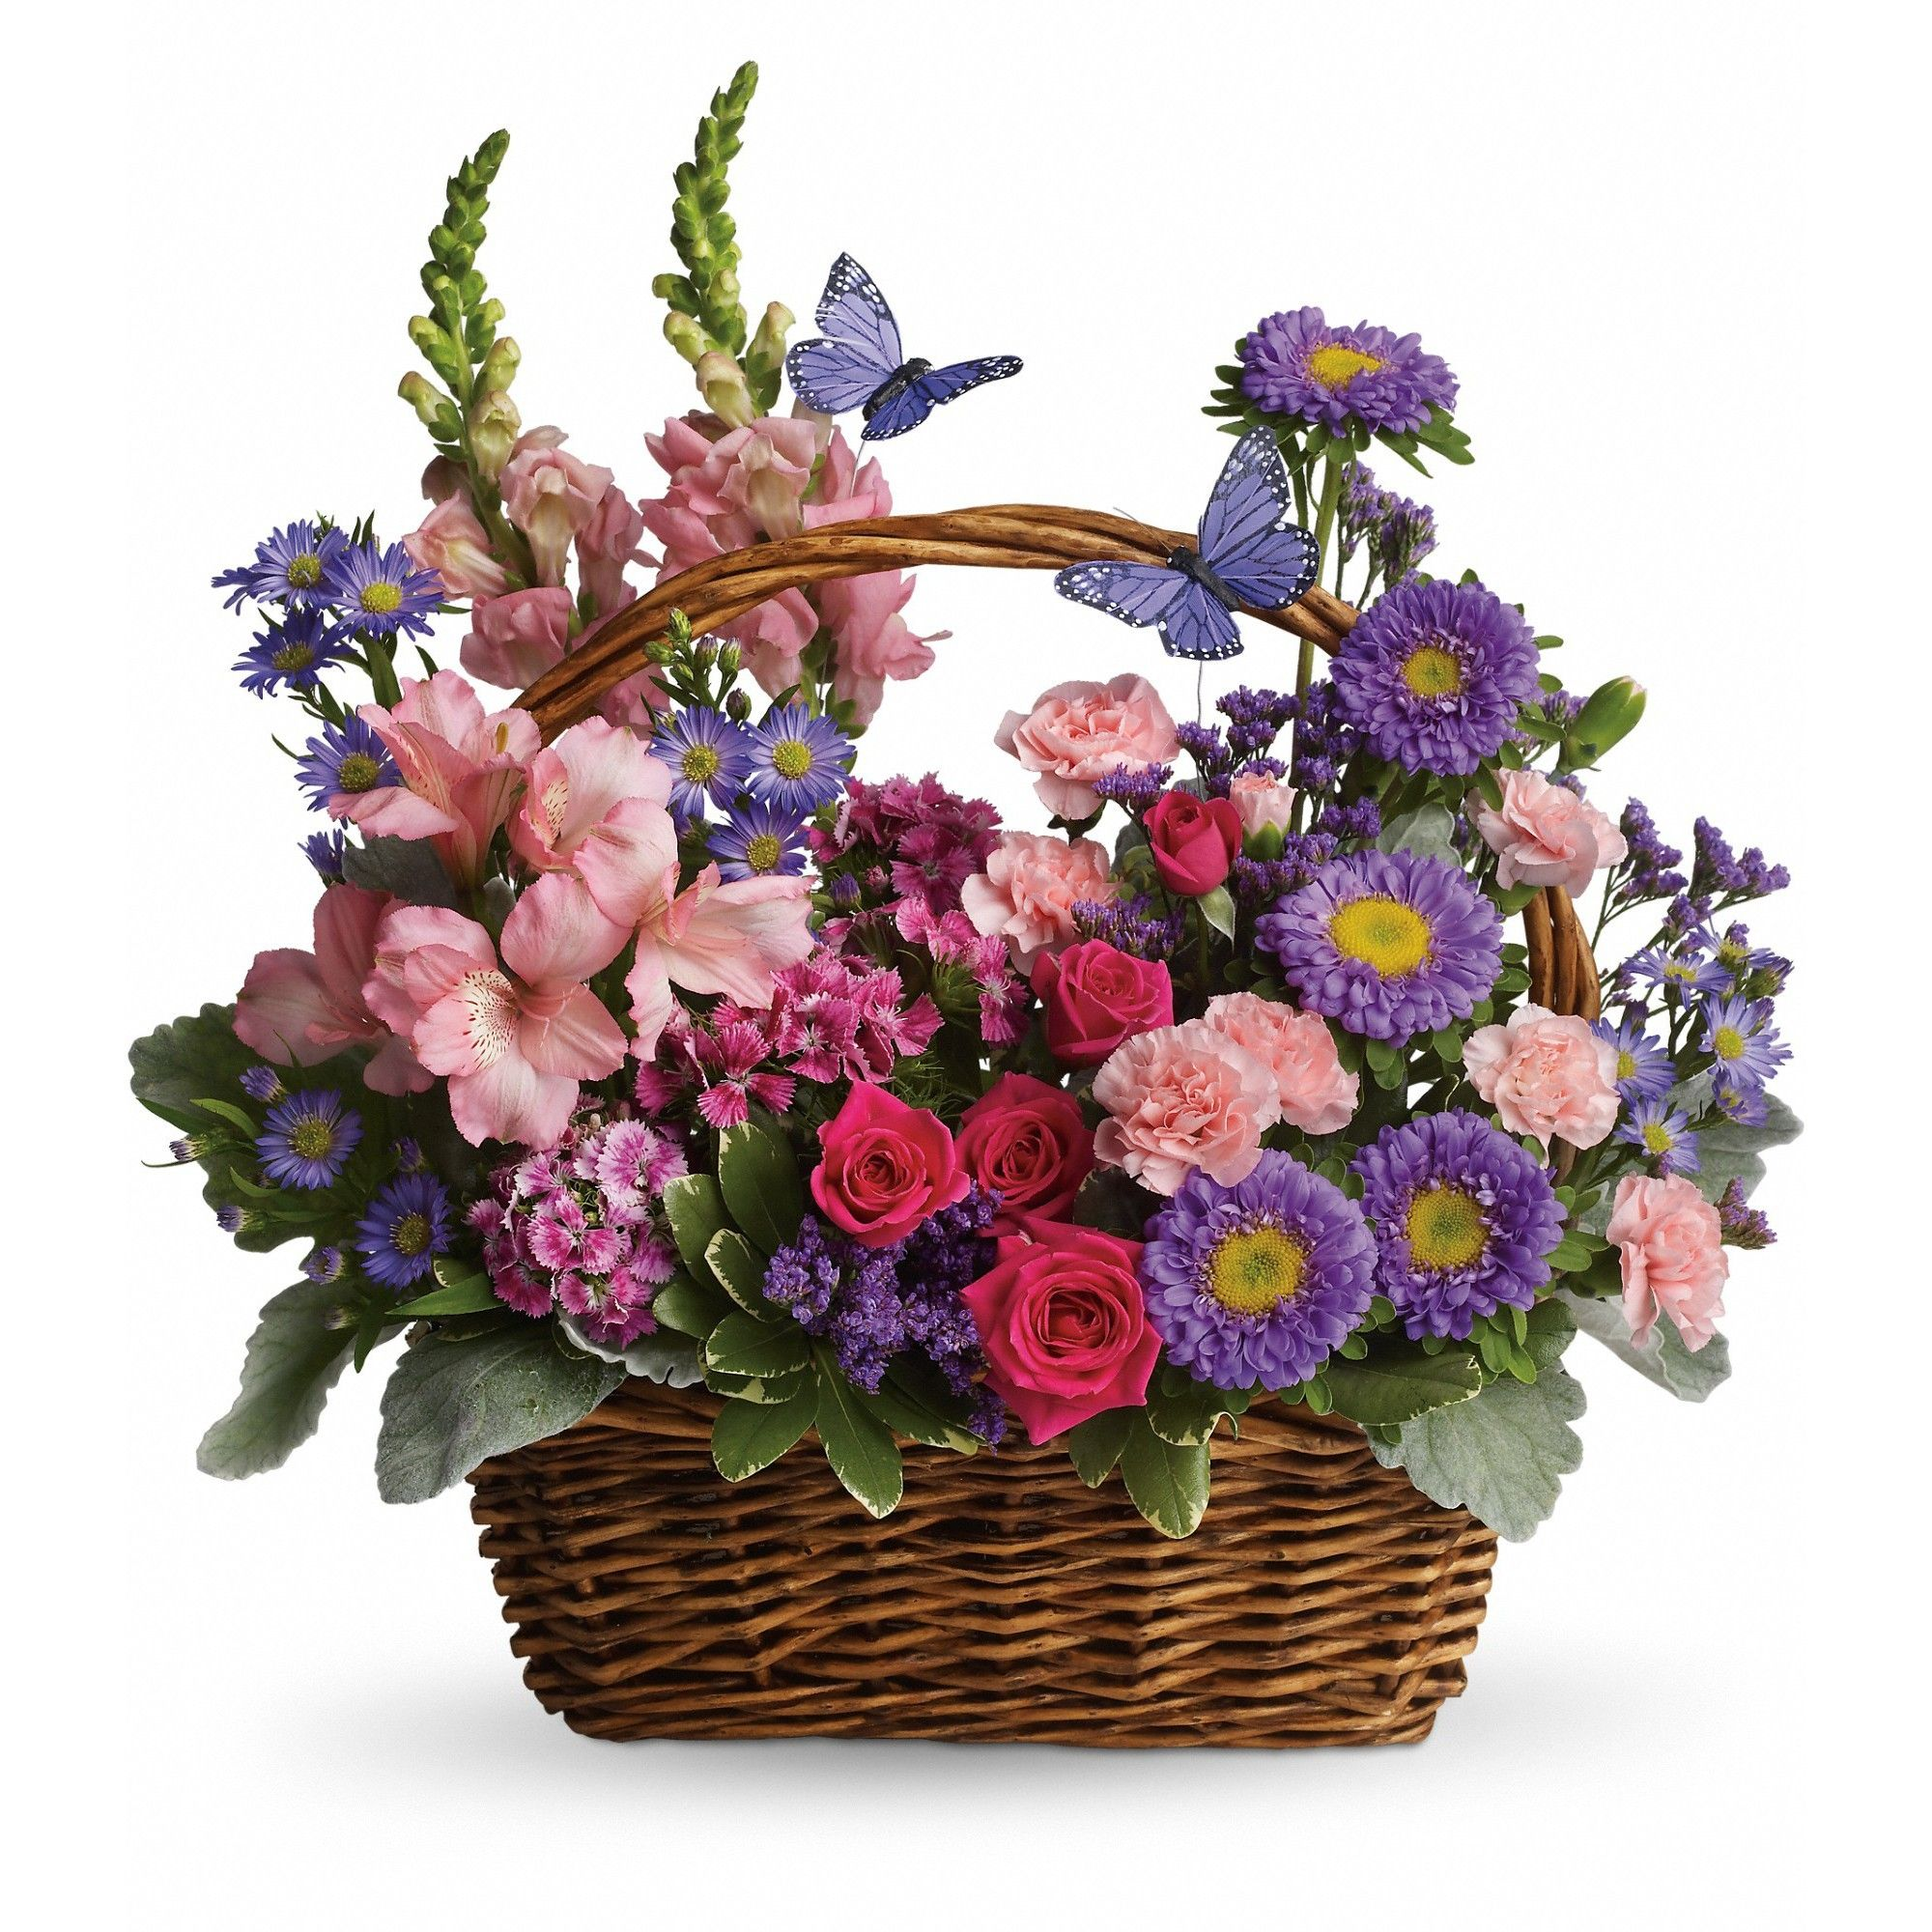 Country Basket Blooms by Teleflora in San Francisco, CA   Marina Floral Design